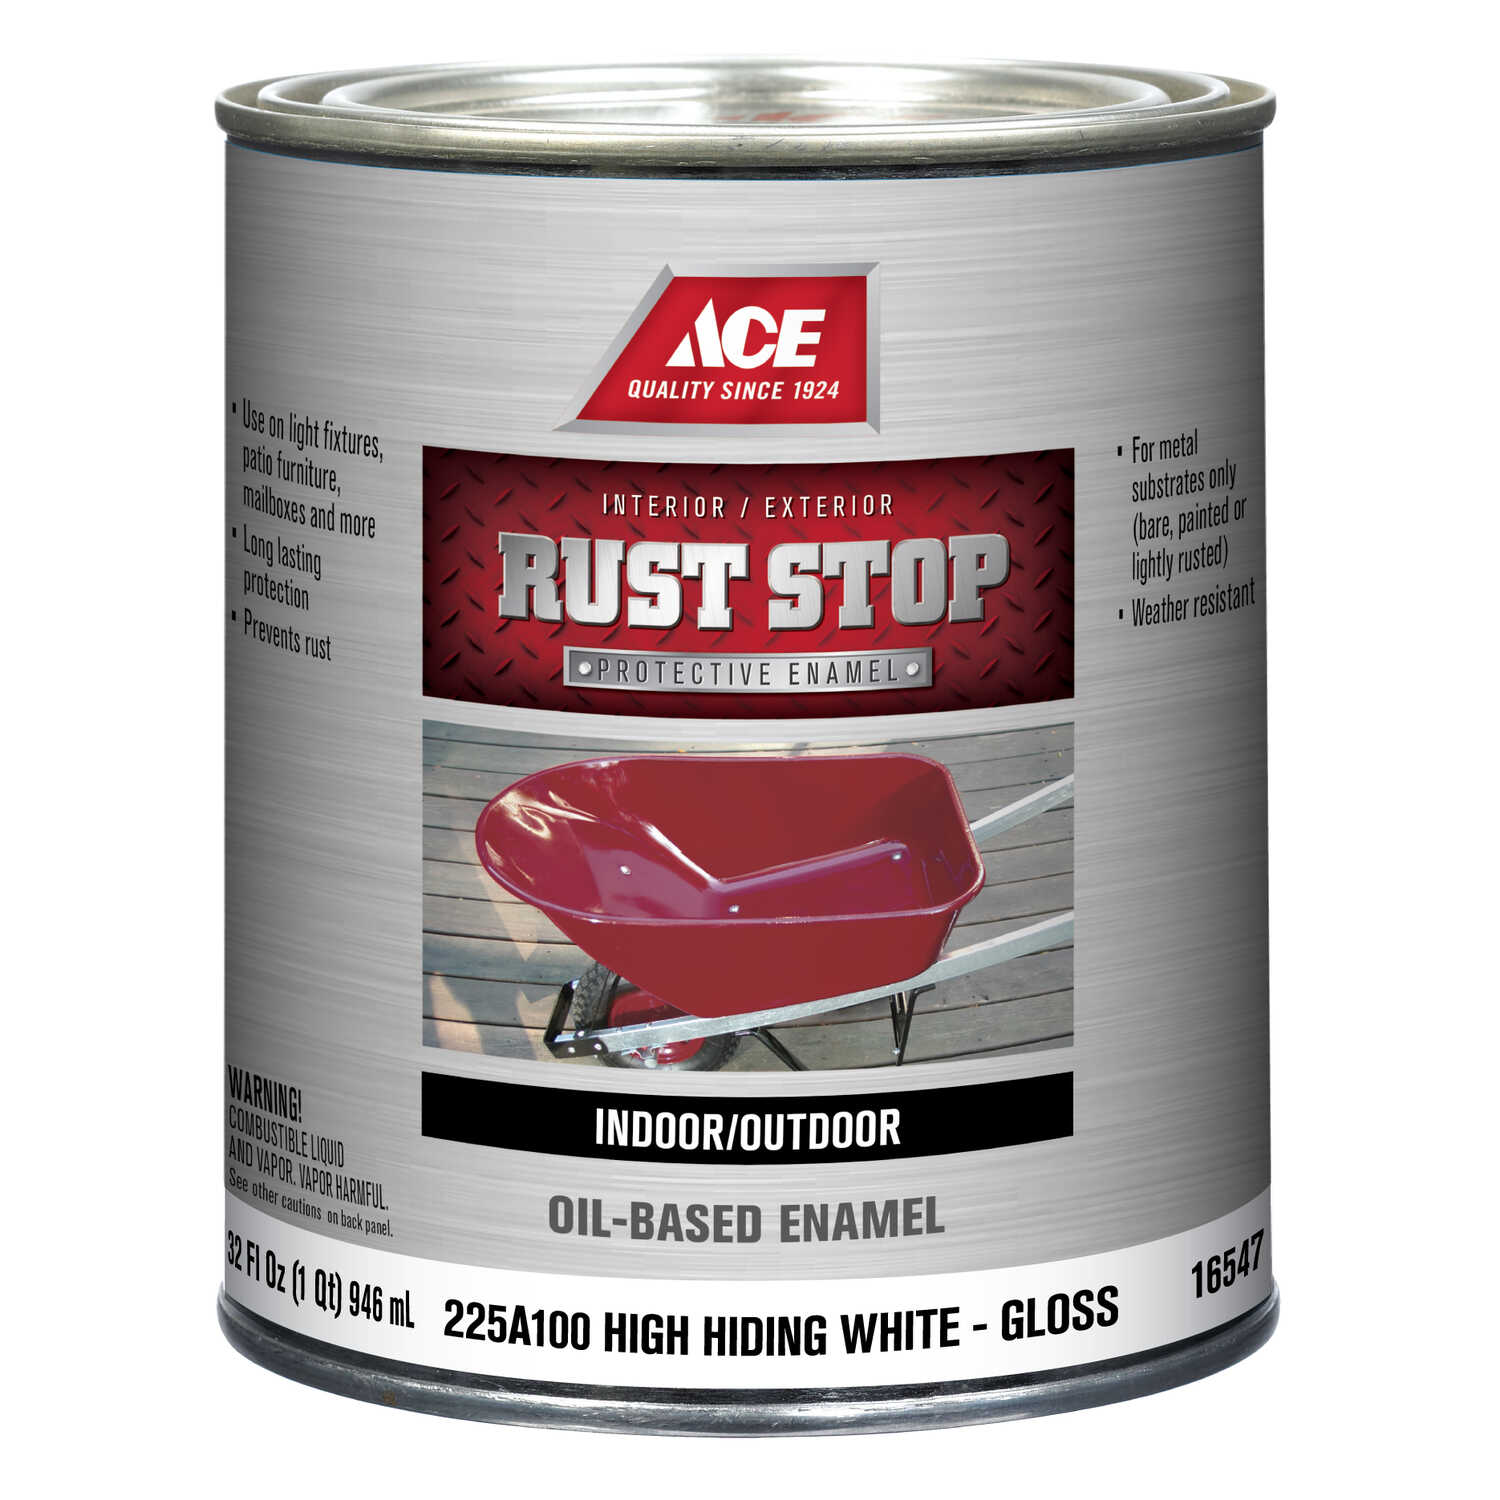 Ace  Rust Stop  Interior/Exterior  Gloss  White  Indoor and Outdoor  Rust Prevention Paint  1 qt.